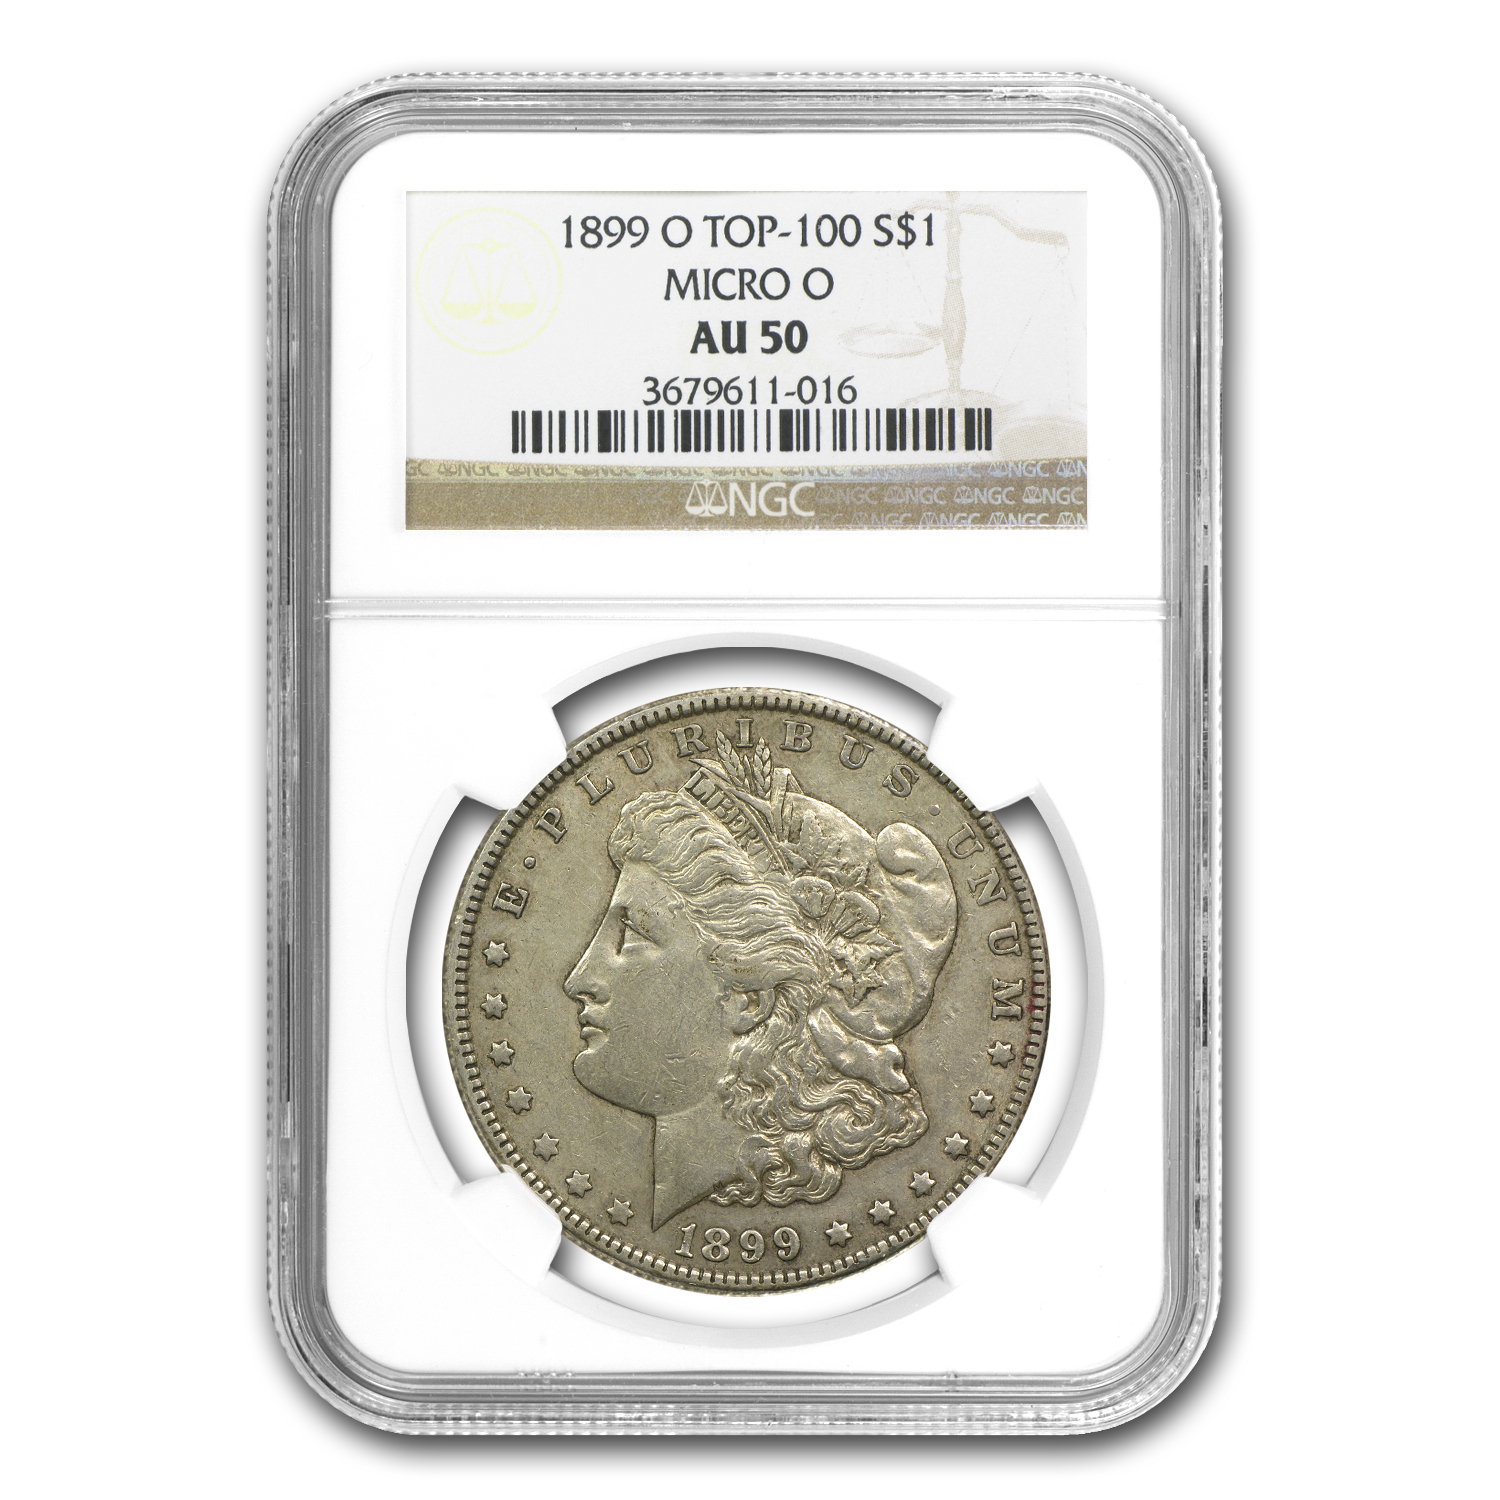 1899-O Morgan Dollar Almost Uncirculated-50 NGC Micro O Top-100